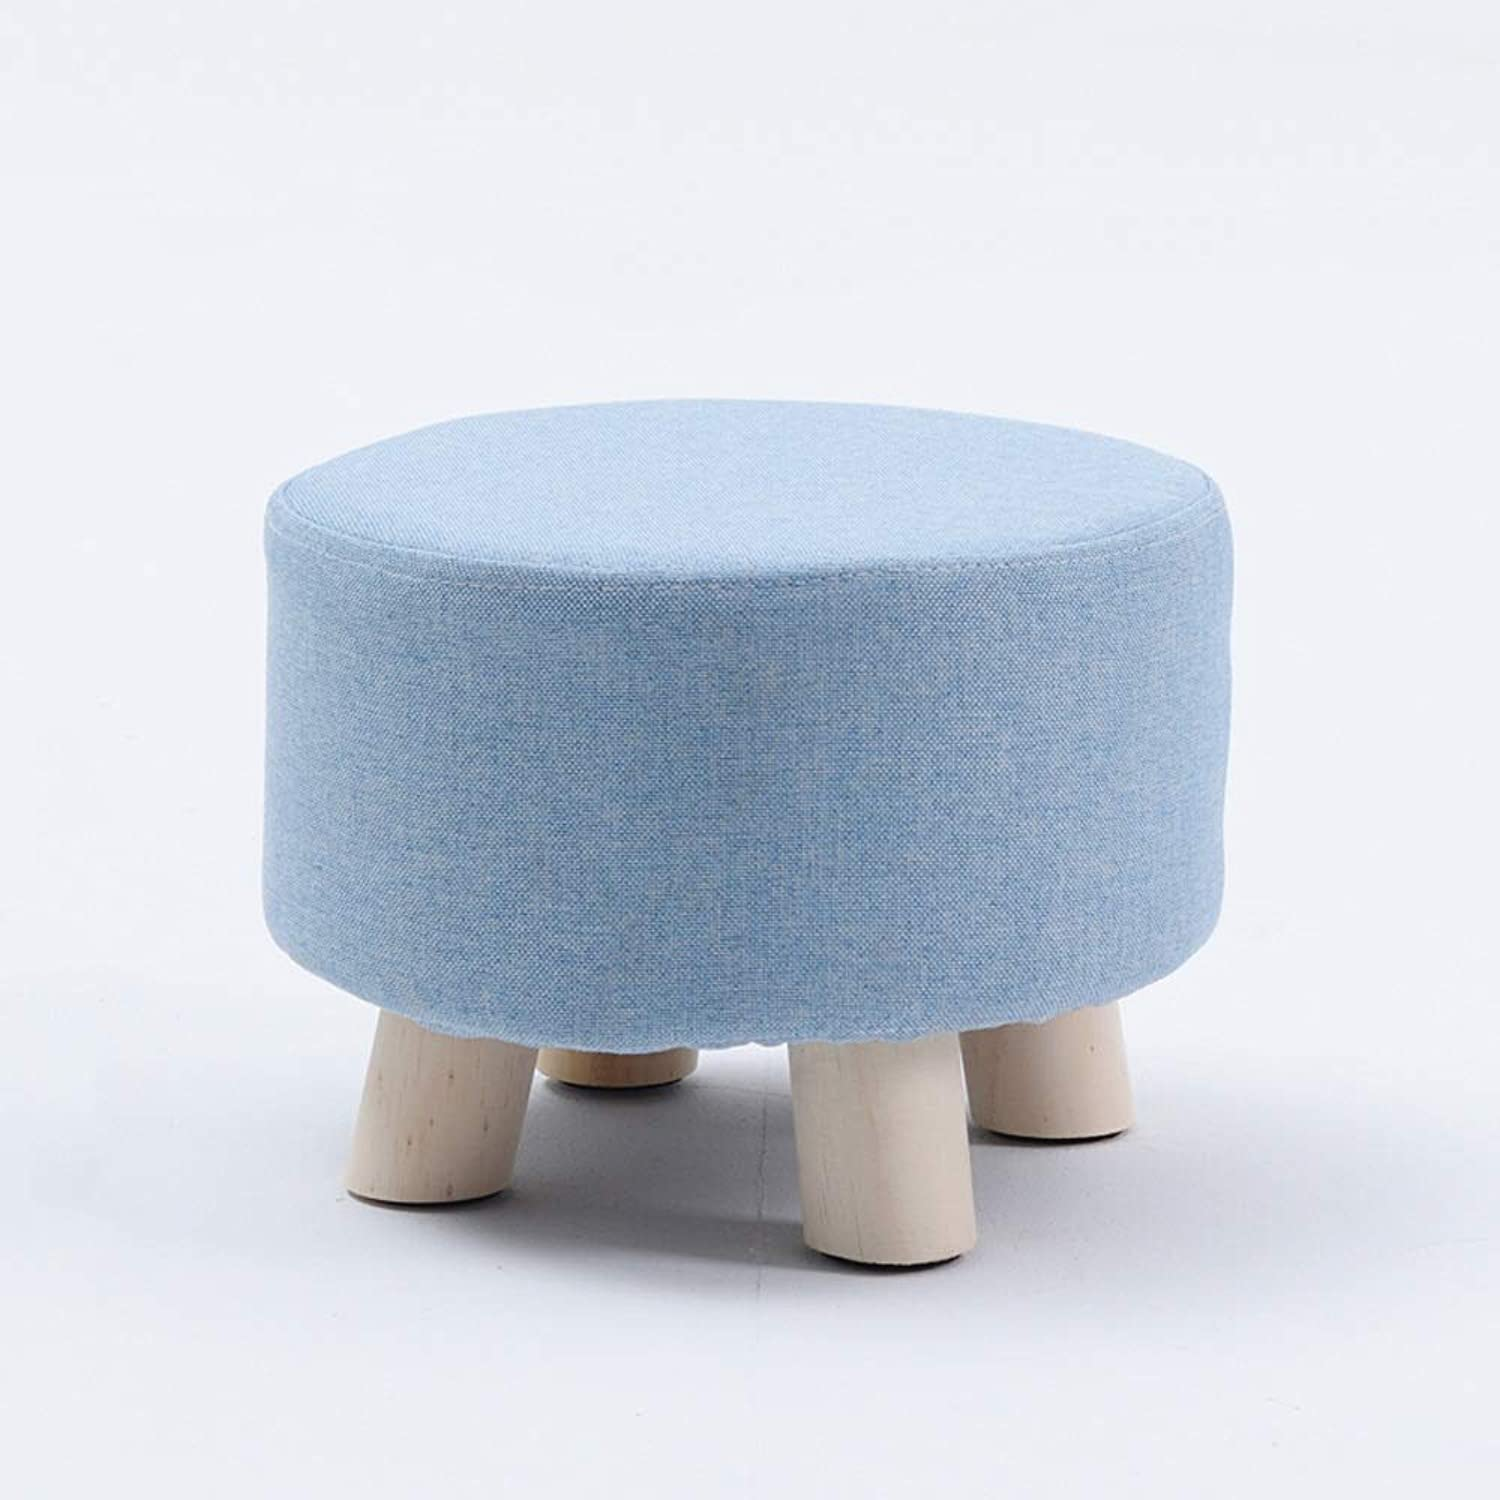 Wapipey European Modern Luxury Upholstered Footstool Nordic Removable Seat Cover Round Stool Wooden Leg Pattern Round Fabric 4 Legs with Non-Slip Mat (color   bluee)